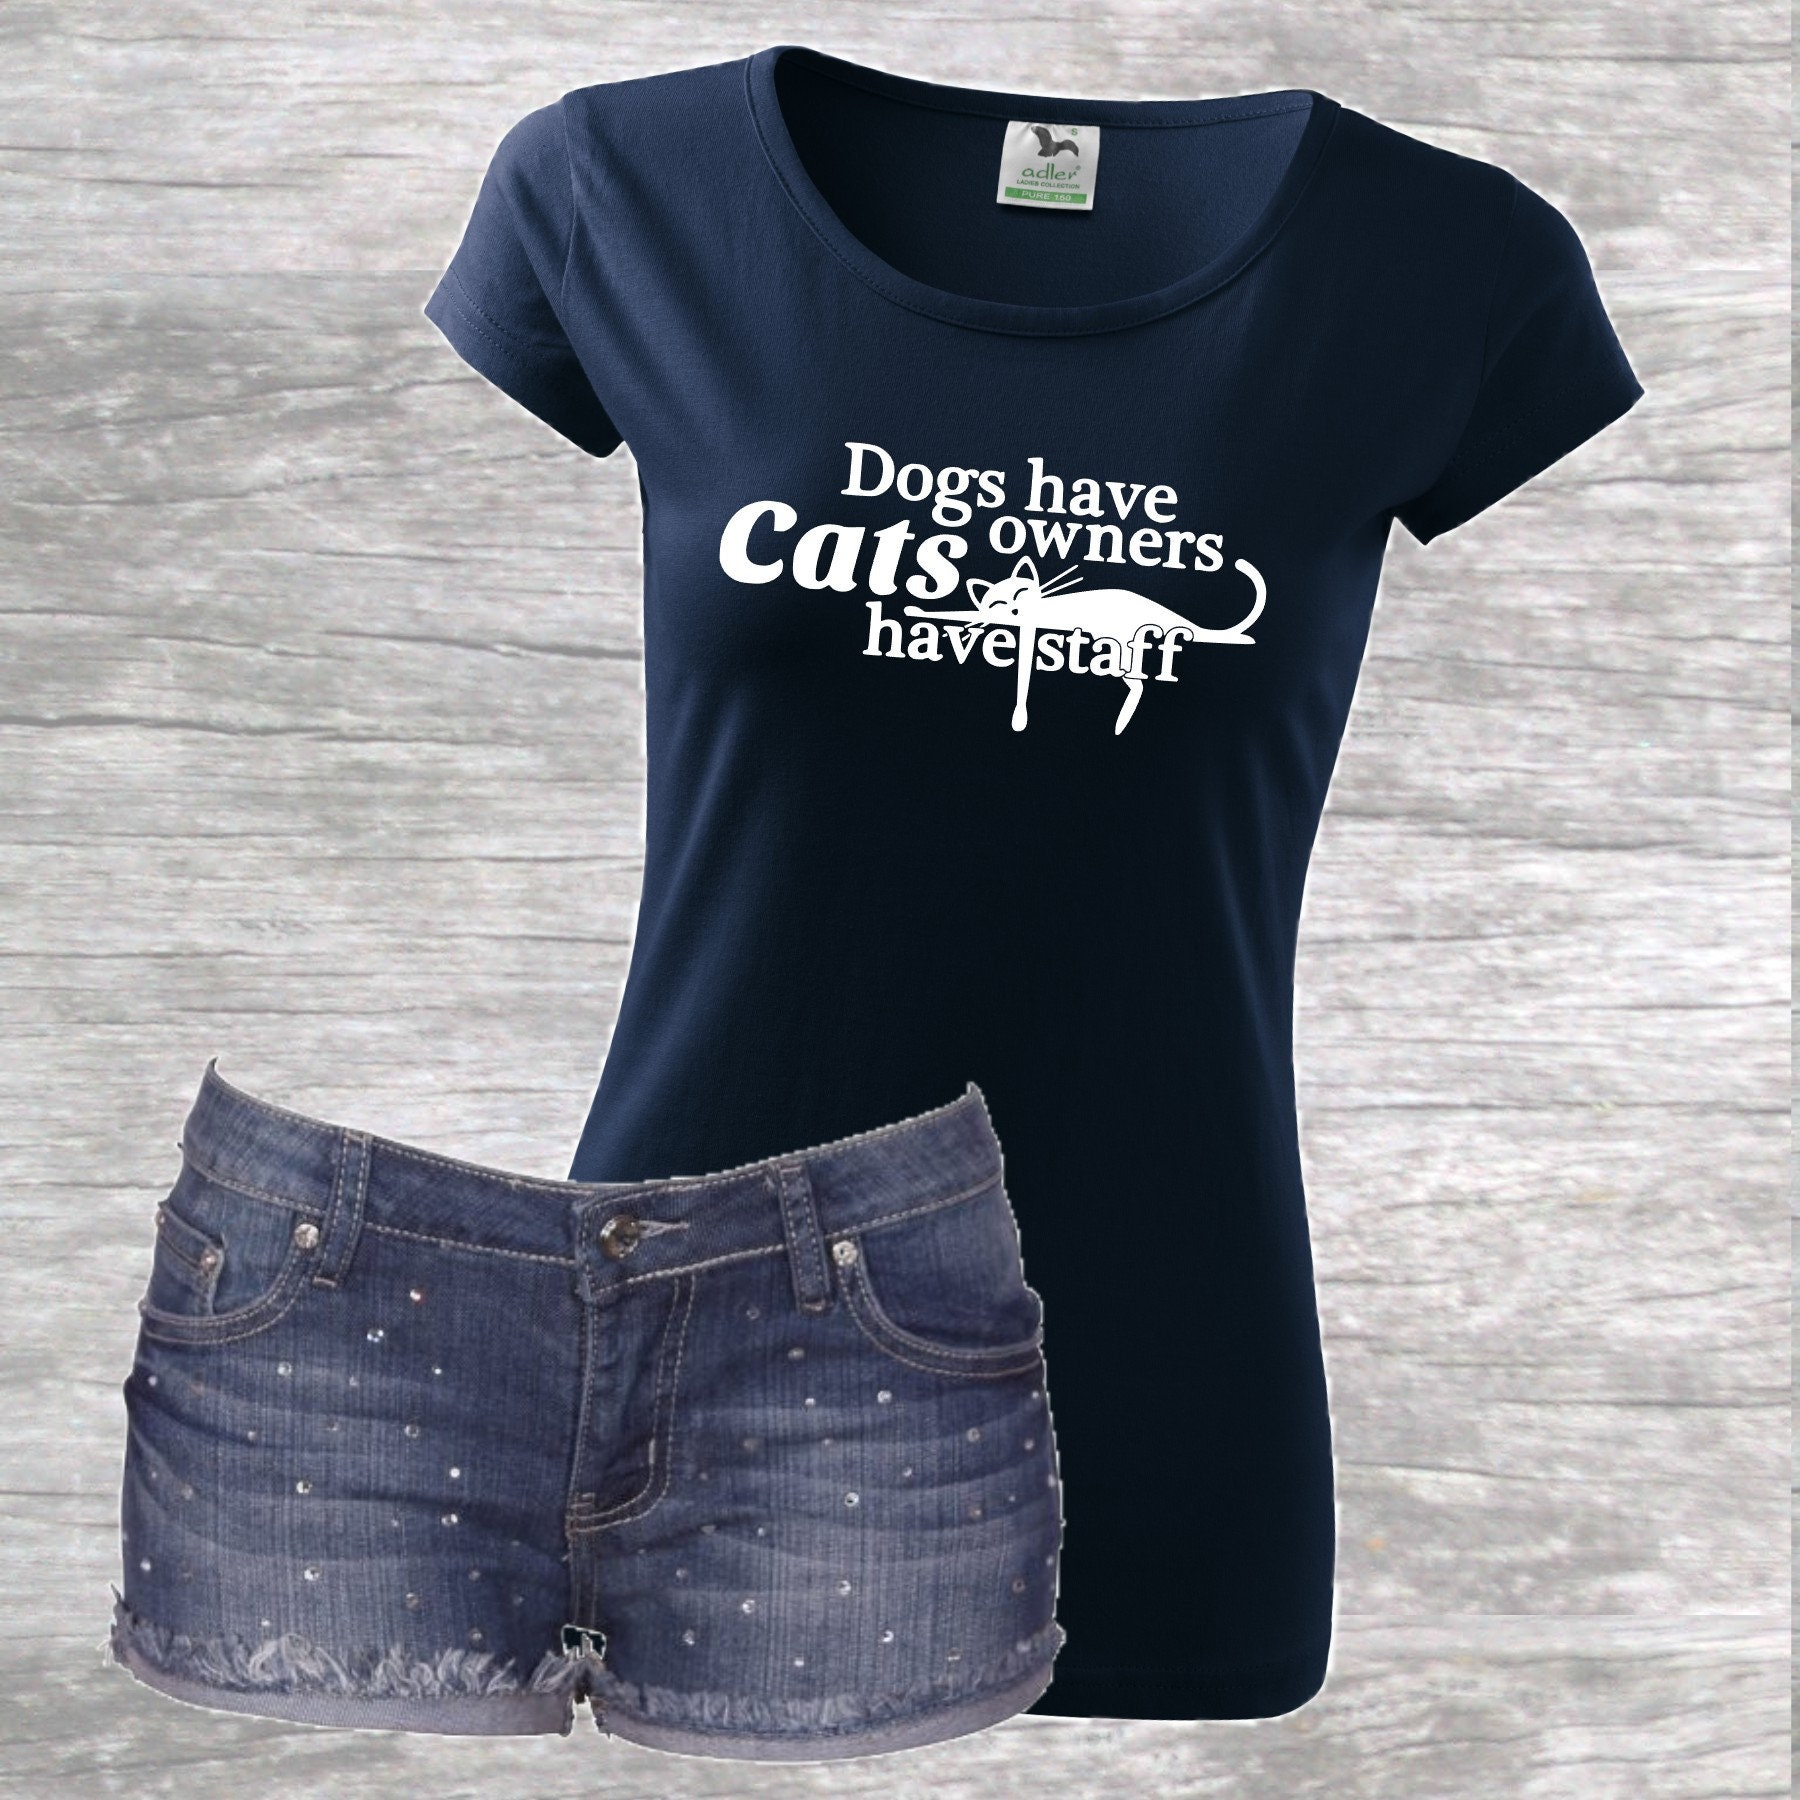 361f5bf8e Dogs have owners cats have staff t-shirt, Cat T-shirt, Dog T-shirt,  MalfiTee, Funny t-shirt, Funny cat ...